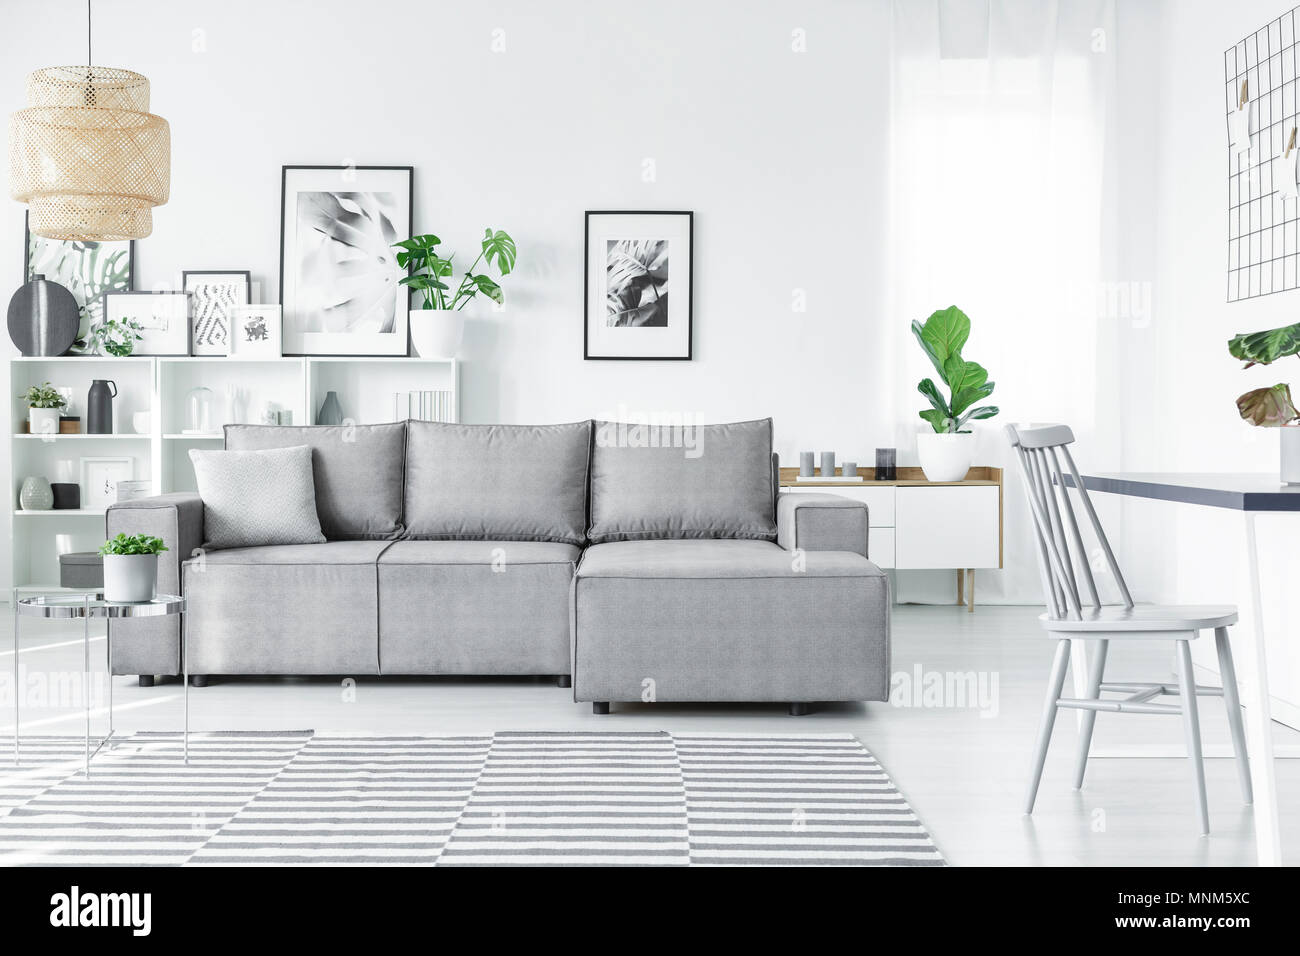 Scandinavian Living Room Interior With A Comfy Corner Sofa